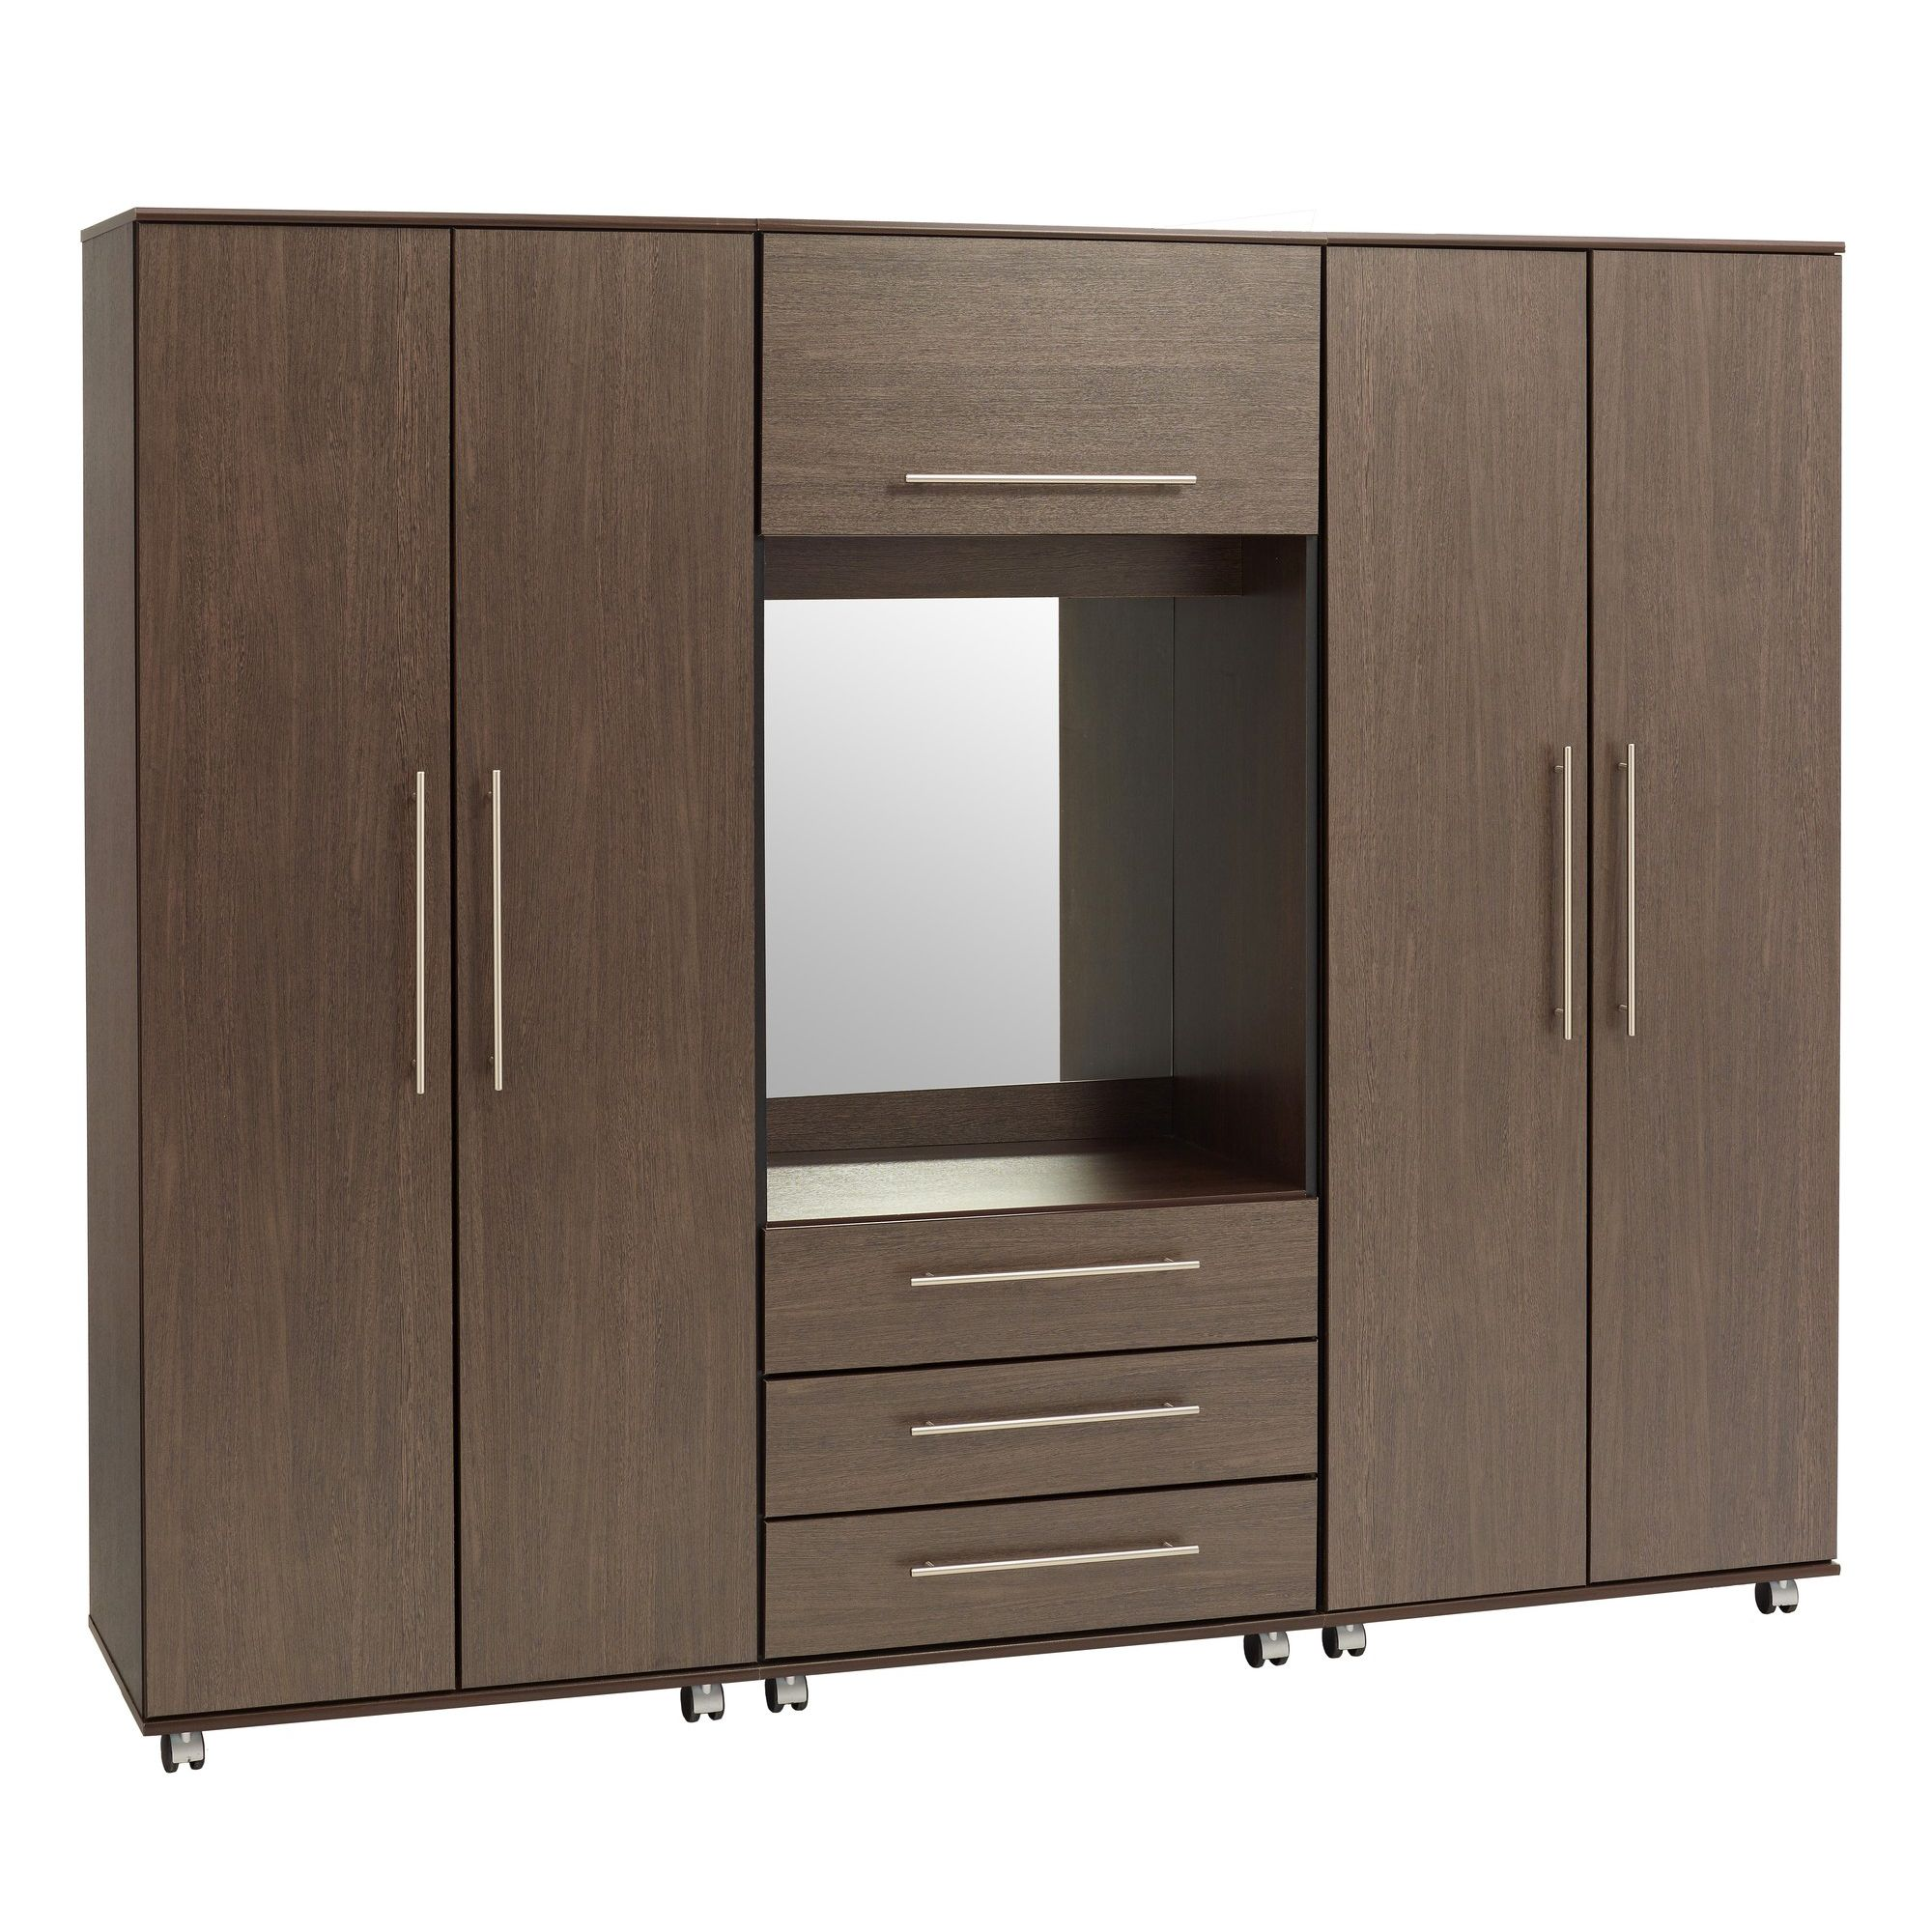 Ideal Furniture New York Fitment Wardrobe - Wenge at Tesco Direct